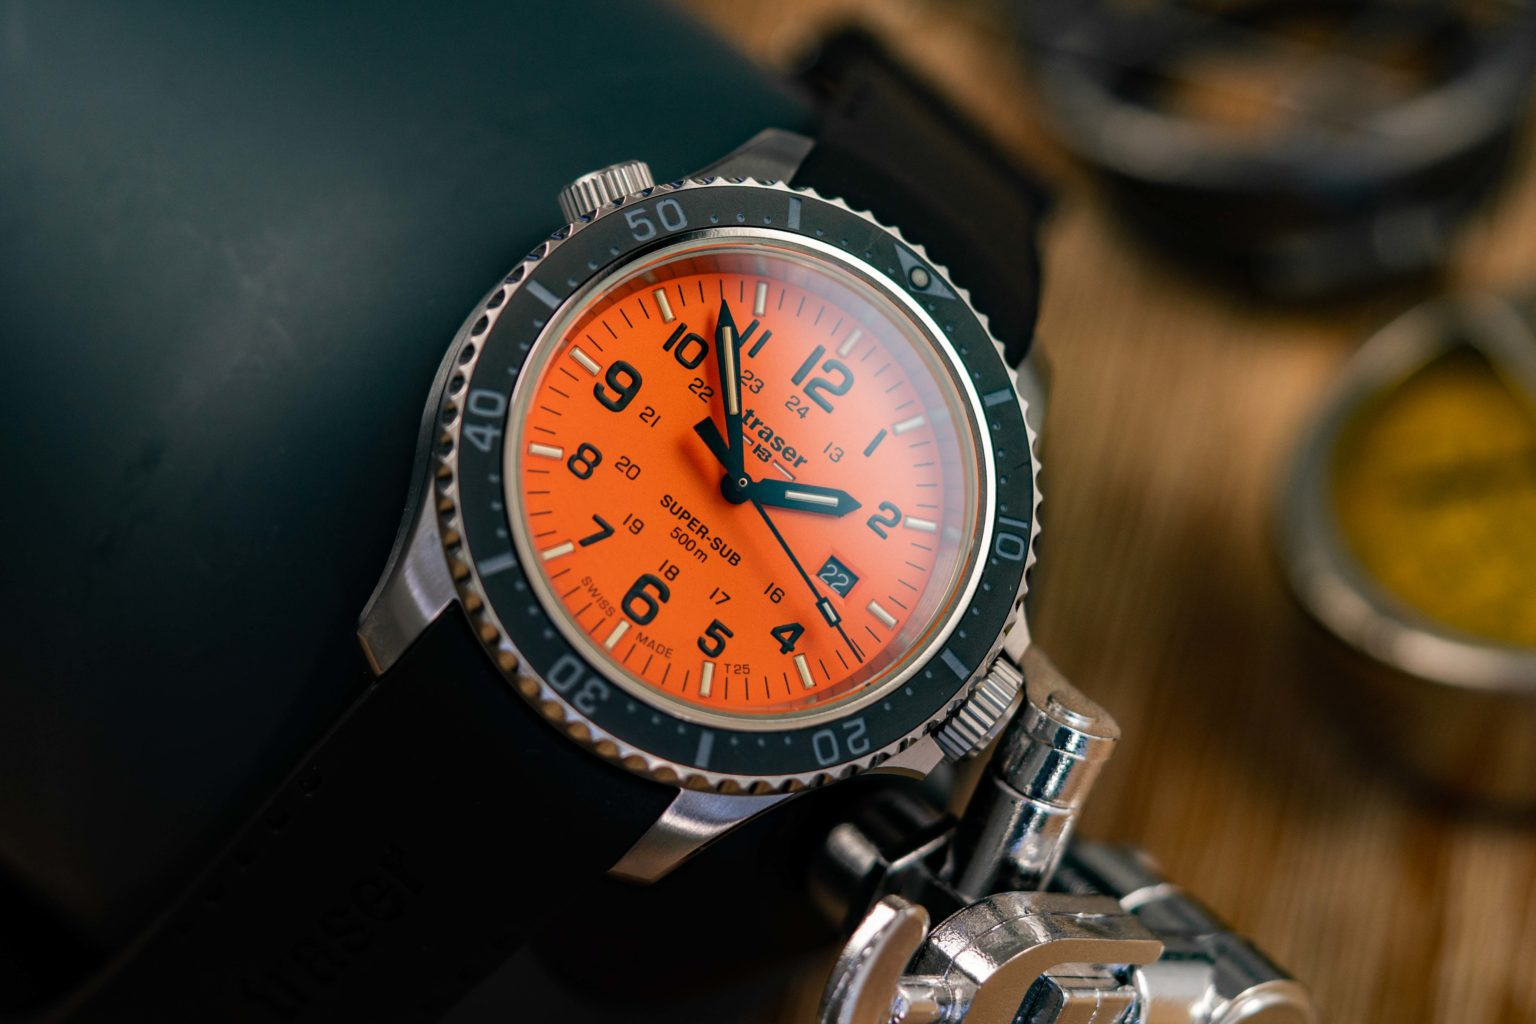 traser-Super-Sub-500-Orange-Taucheruhr-Test-1